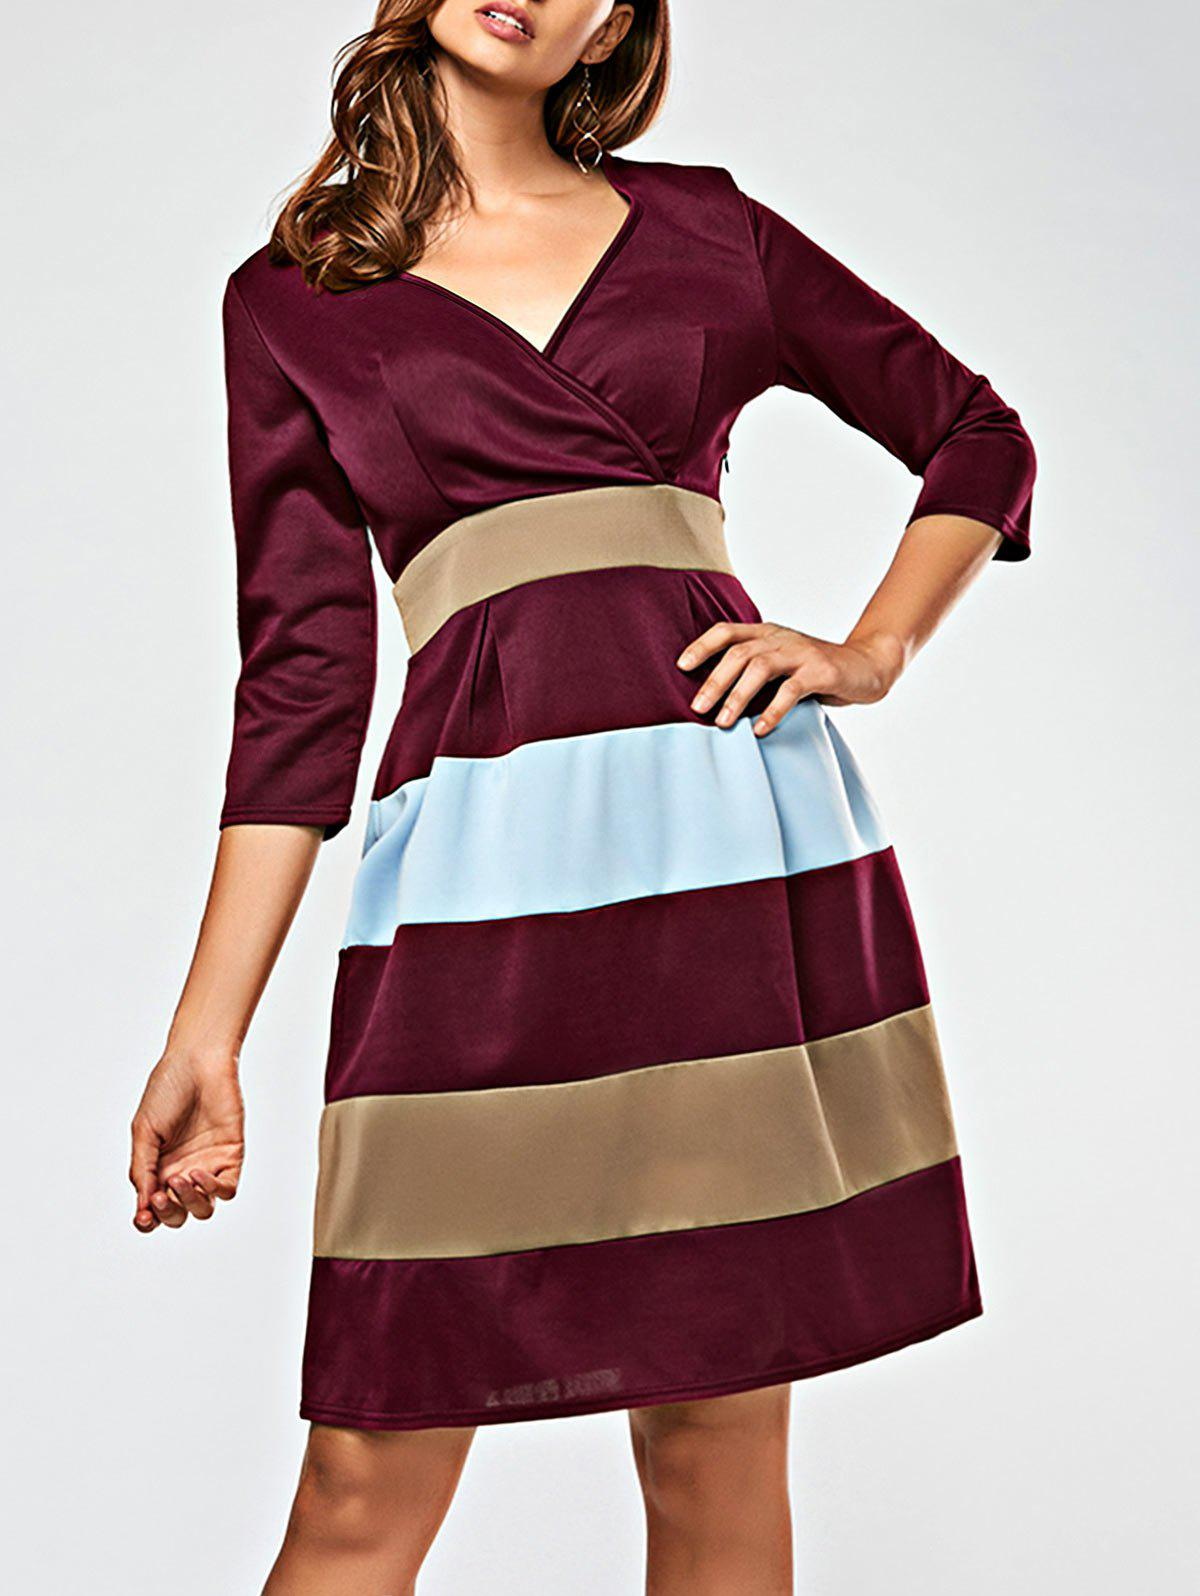 V Neck Color Block Surplice Dress - WINE RED S